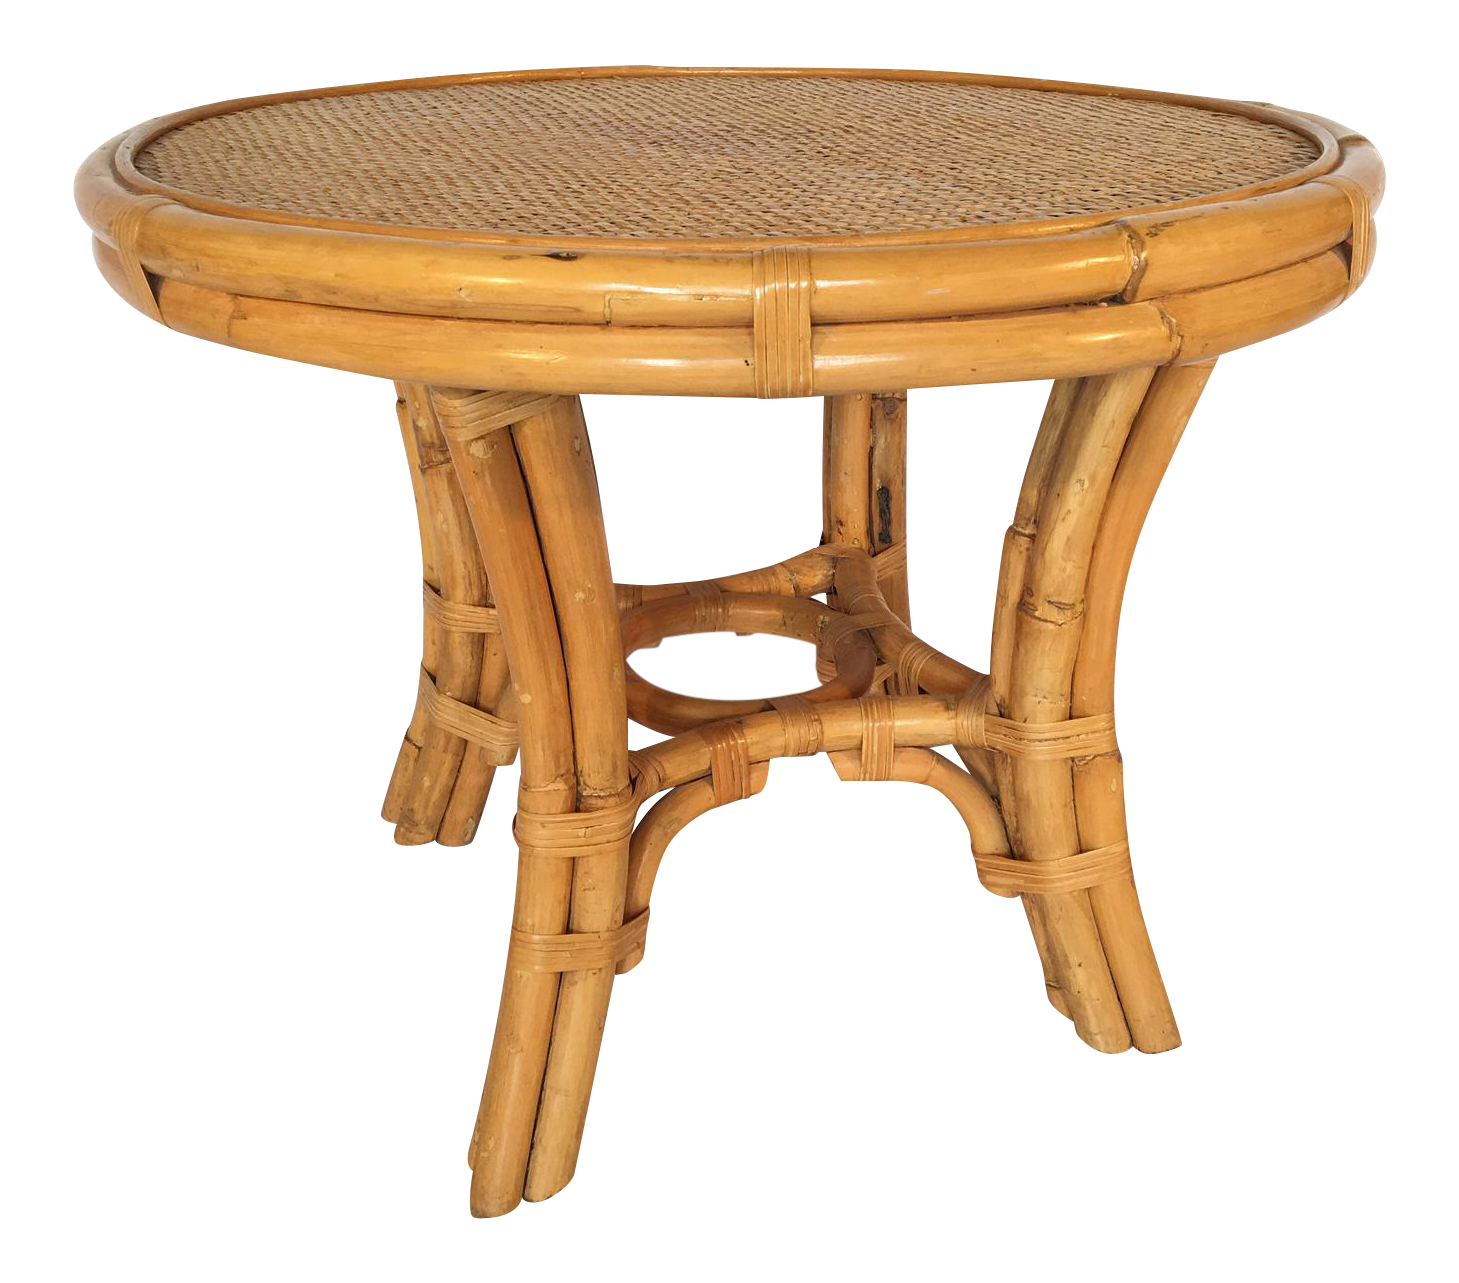 Vintage Palm Beach Cane And Rattan Round Side Table For Sale